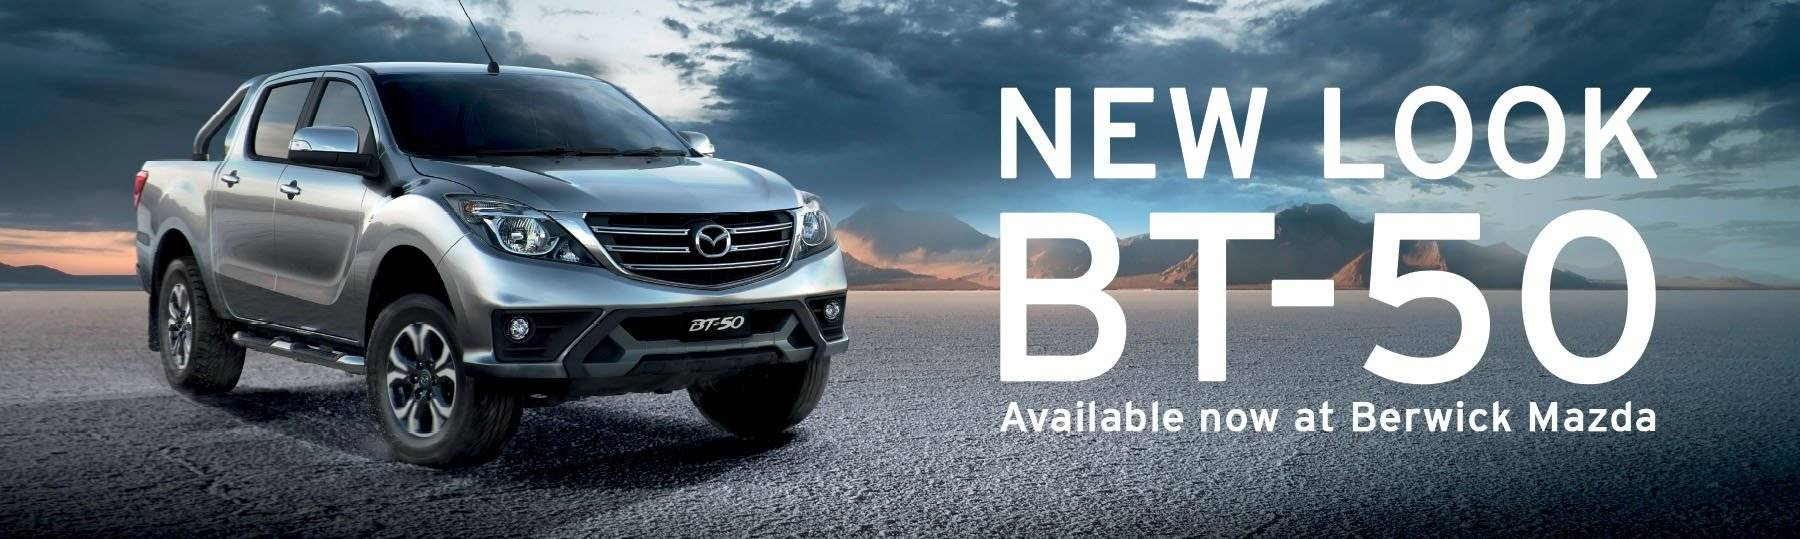 New-Look BT-50 has arrived at Berwick Mazda. Test Drive today!